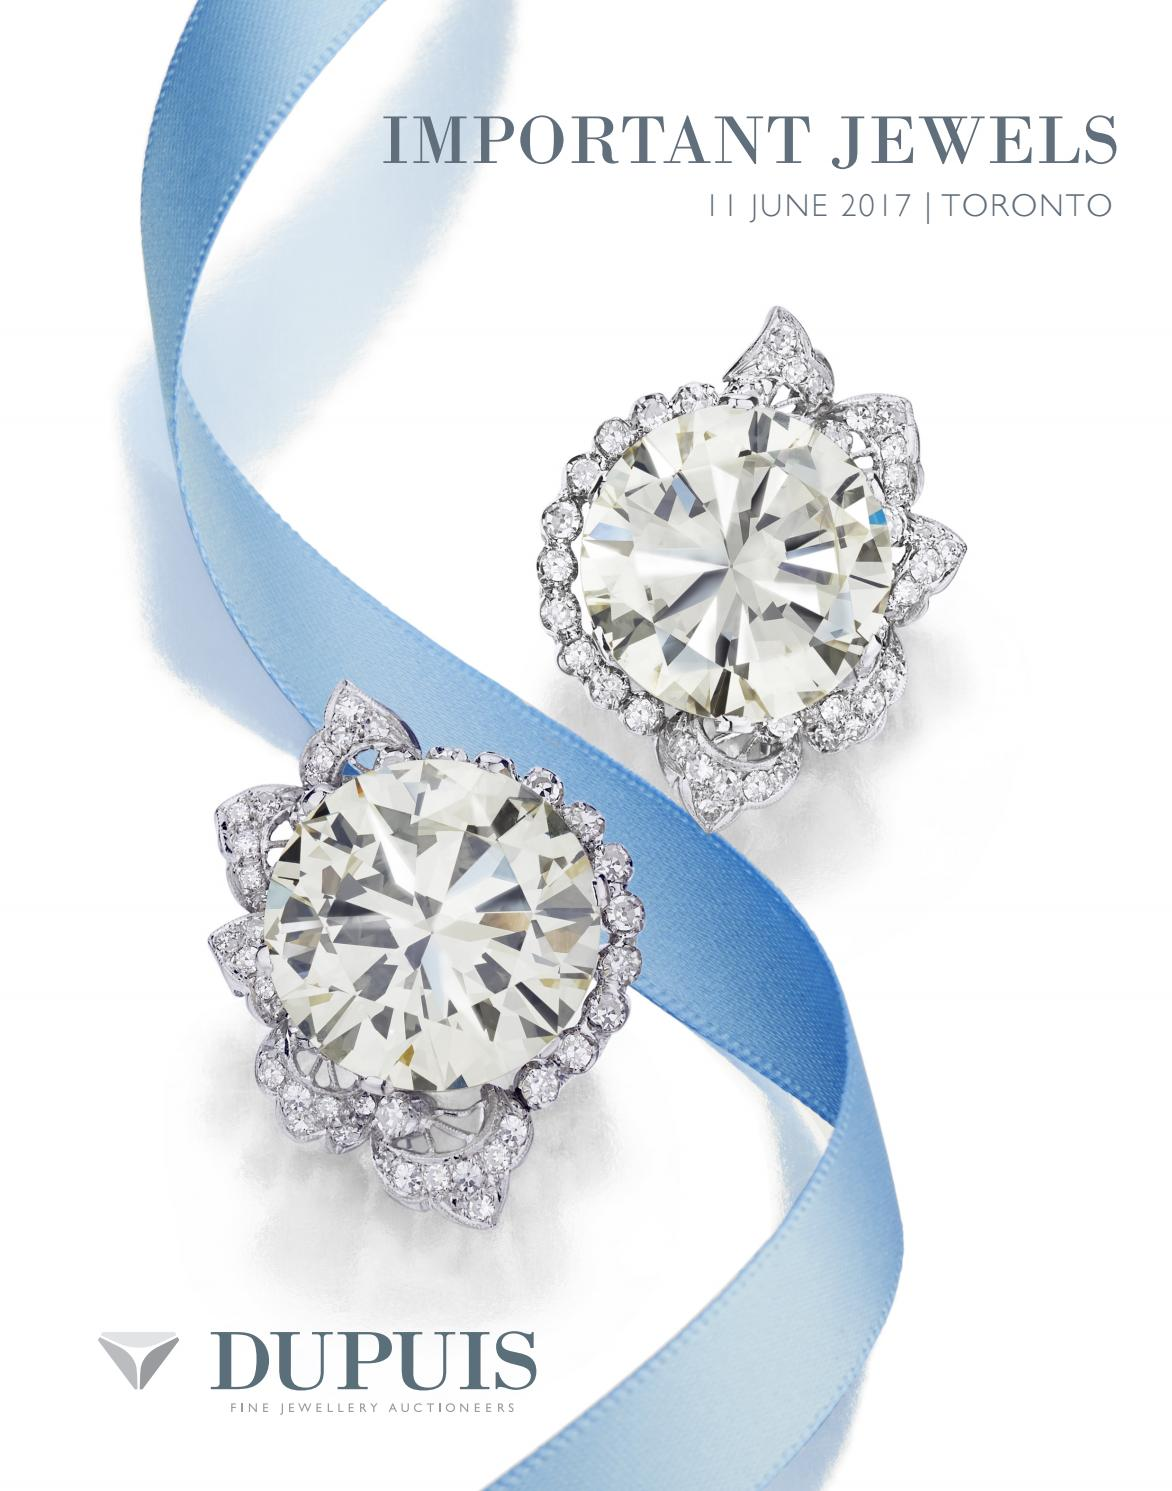 c4bbd61ab1b41 Dupuis Important Jewels Spring 2017 by Dupuis Auctioneers - issuu